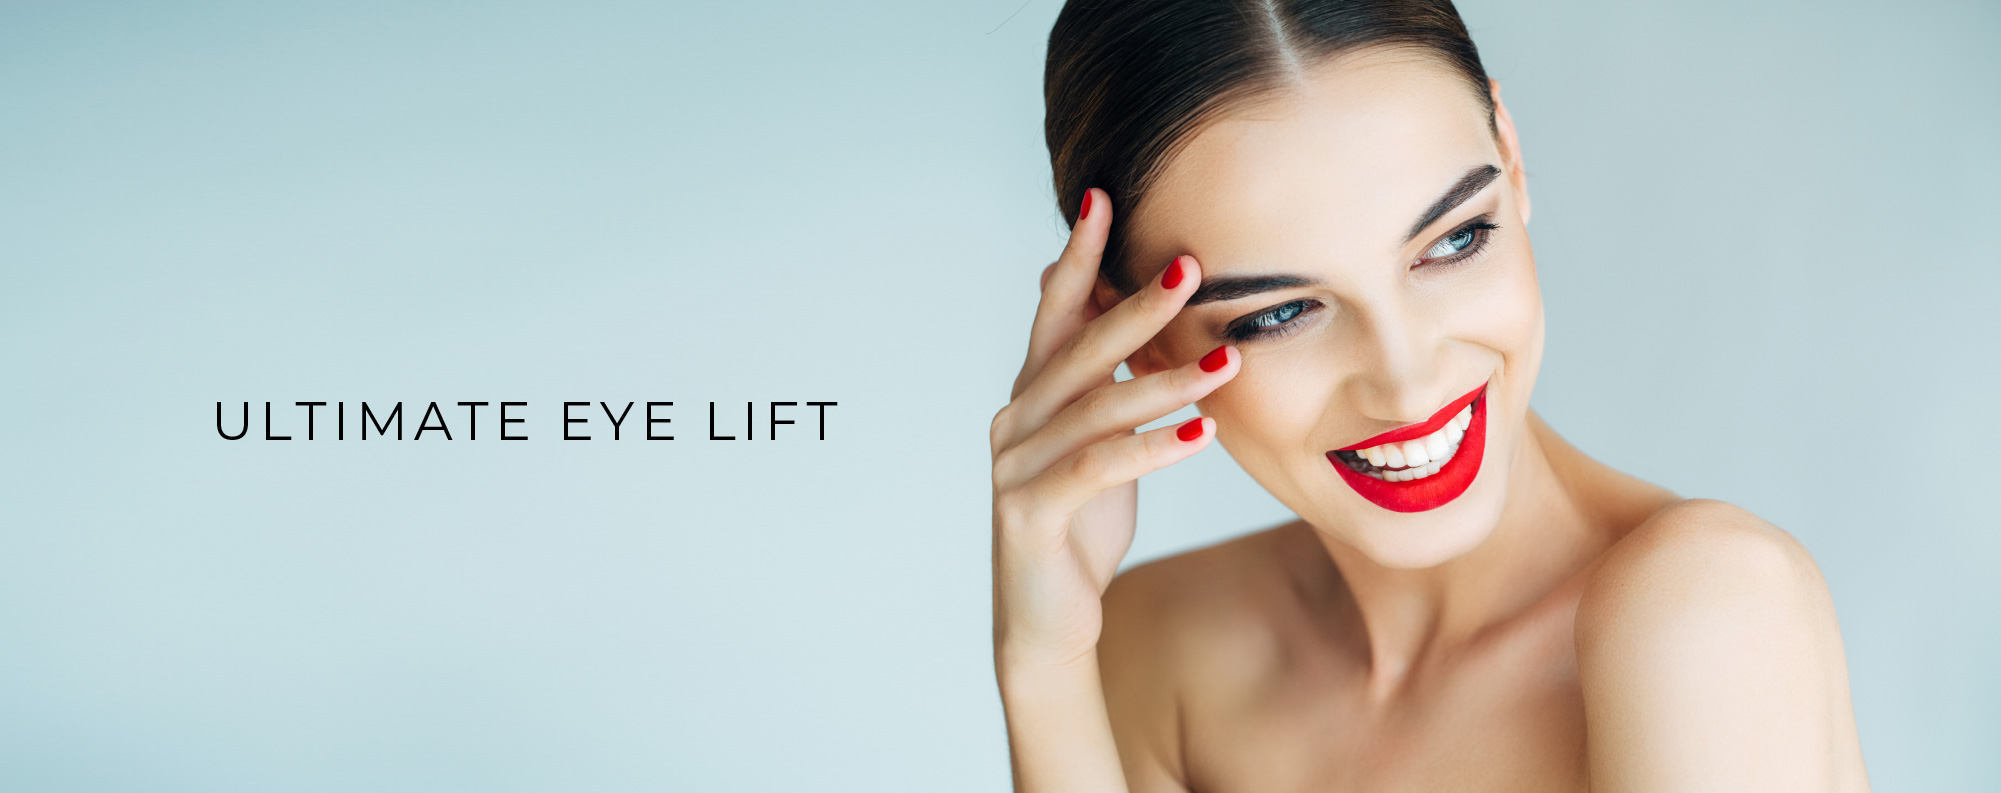 Ultimate Eye Lift